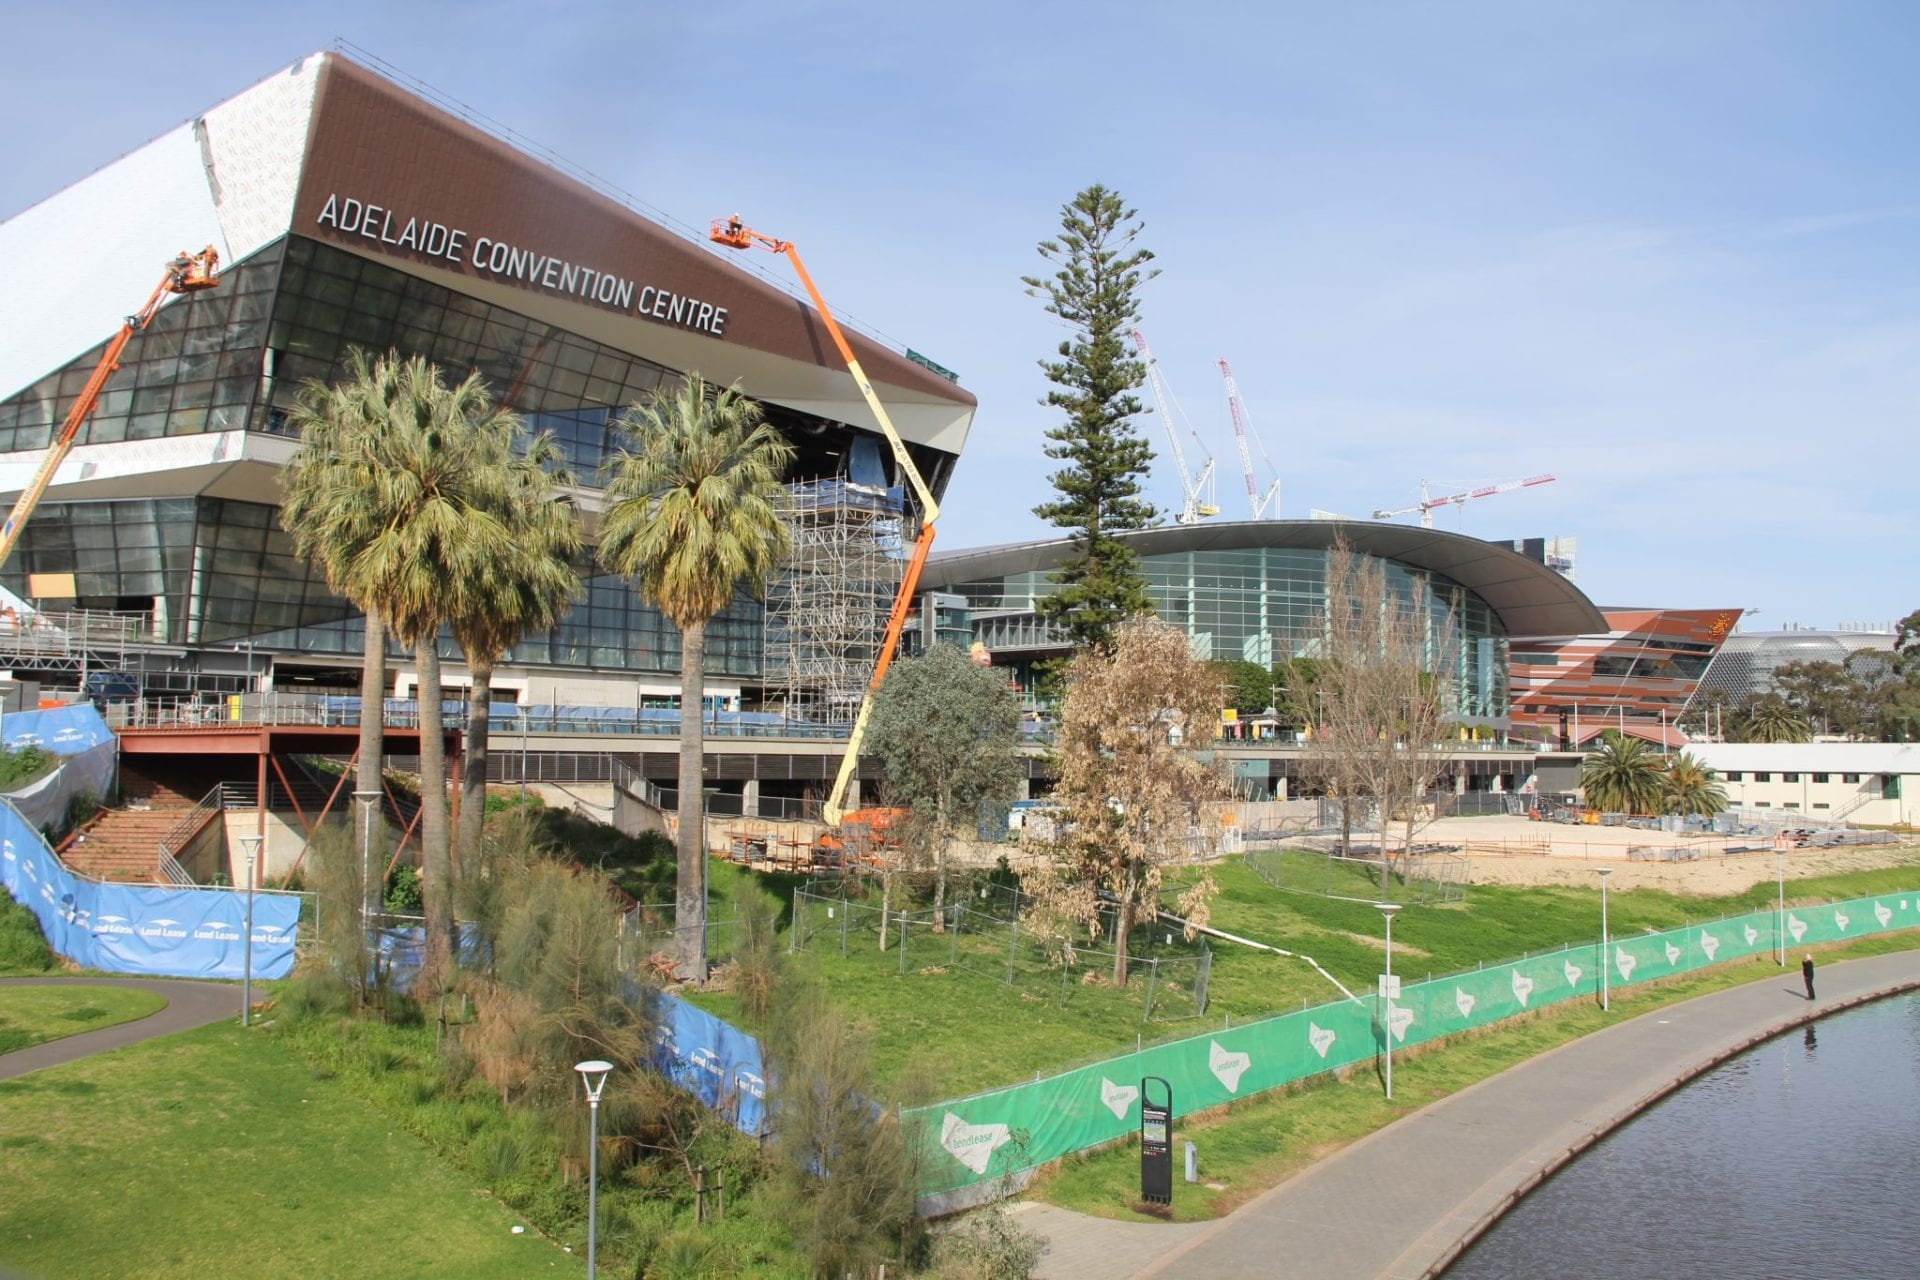 Adelaide Convention Center